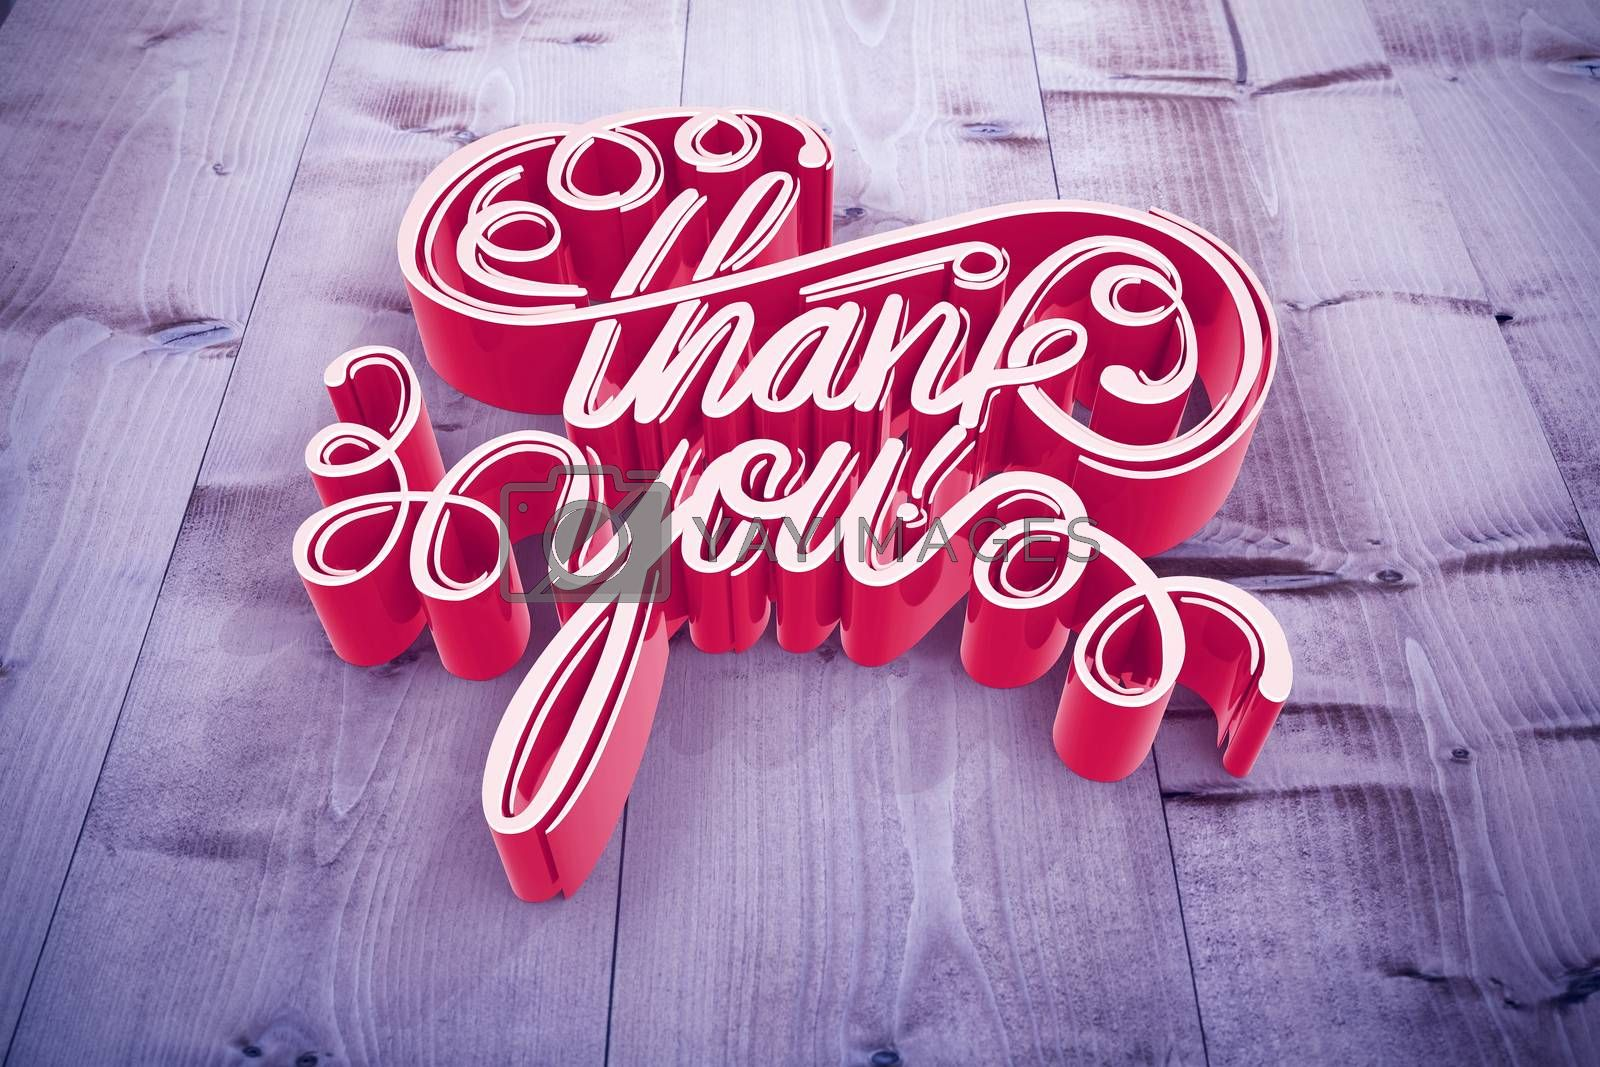 Illustration of of thank you text against bleached wooden planks background